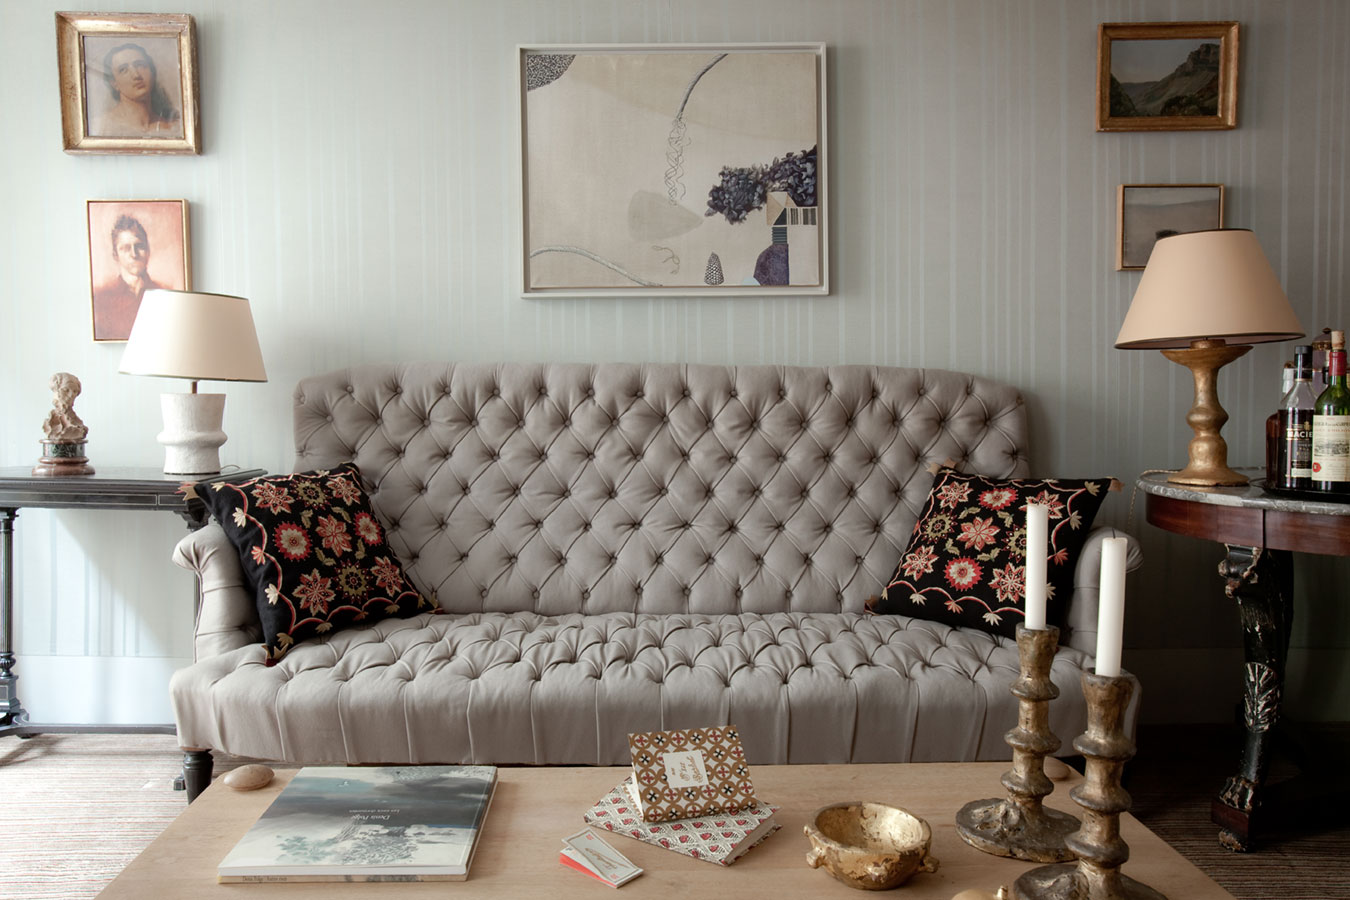 Classic Style Furniture for Practical Chic Interiors. Nice broad chic couch with printed cushions in the light living room